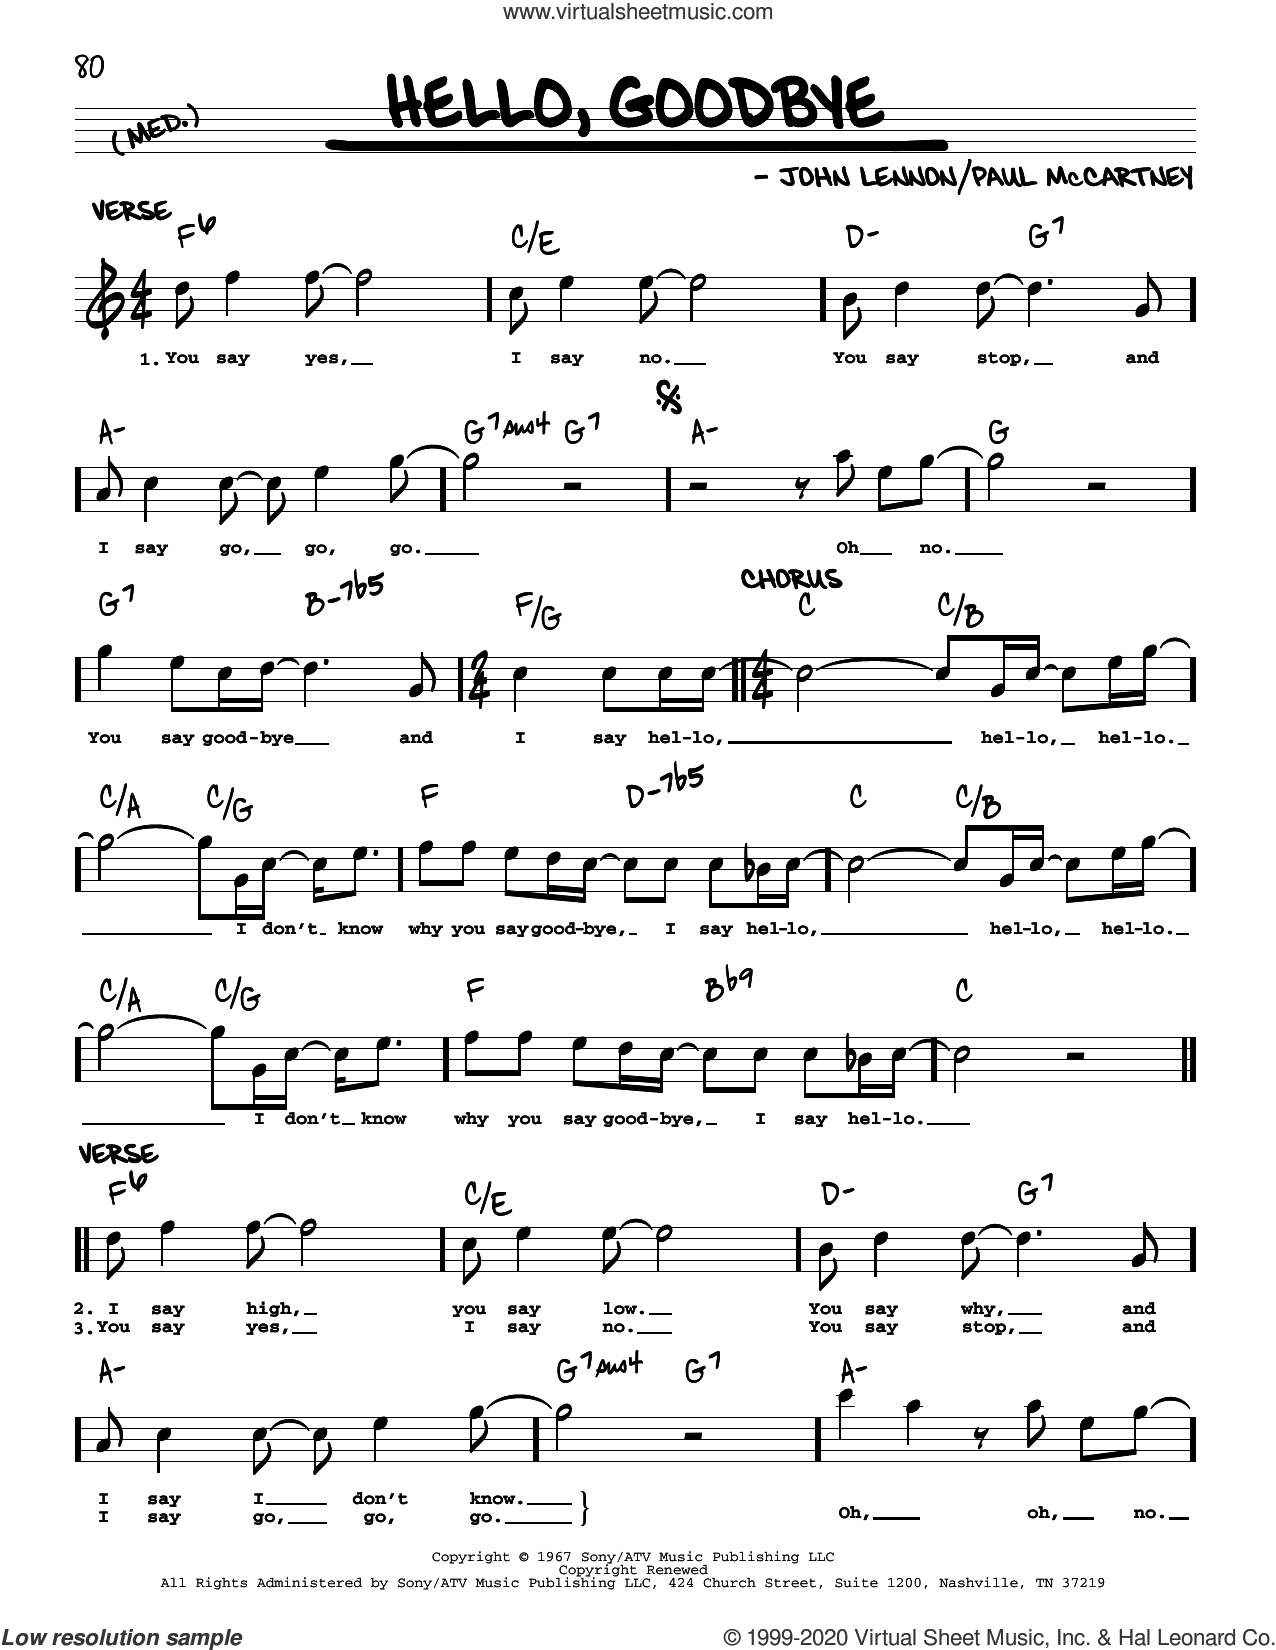 Hello, Goodbye [Jazz version] sheet music for voice and other instruments (real book with lyrics) by The Beatles, John Lennon and Paul McCartney, intermediate skill level